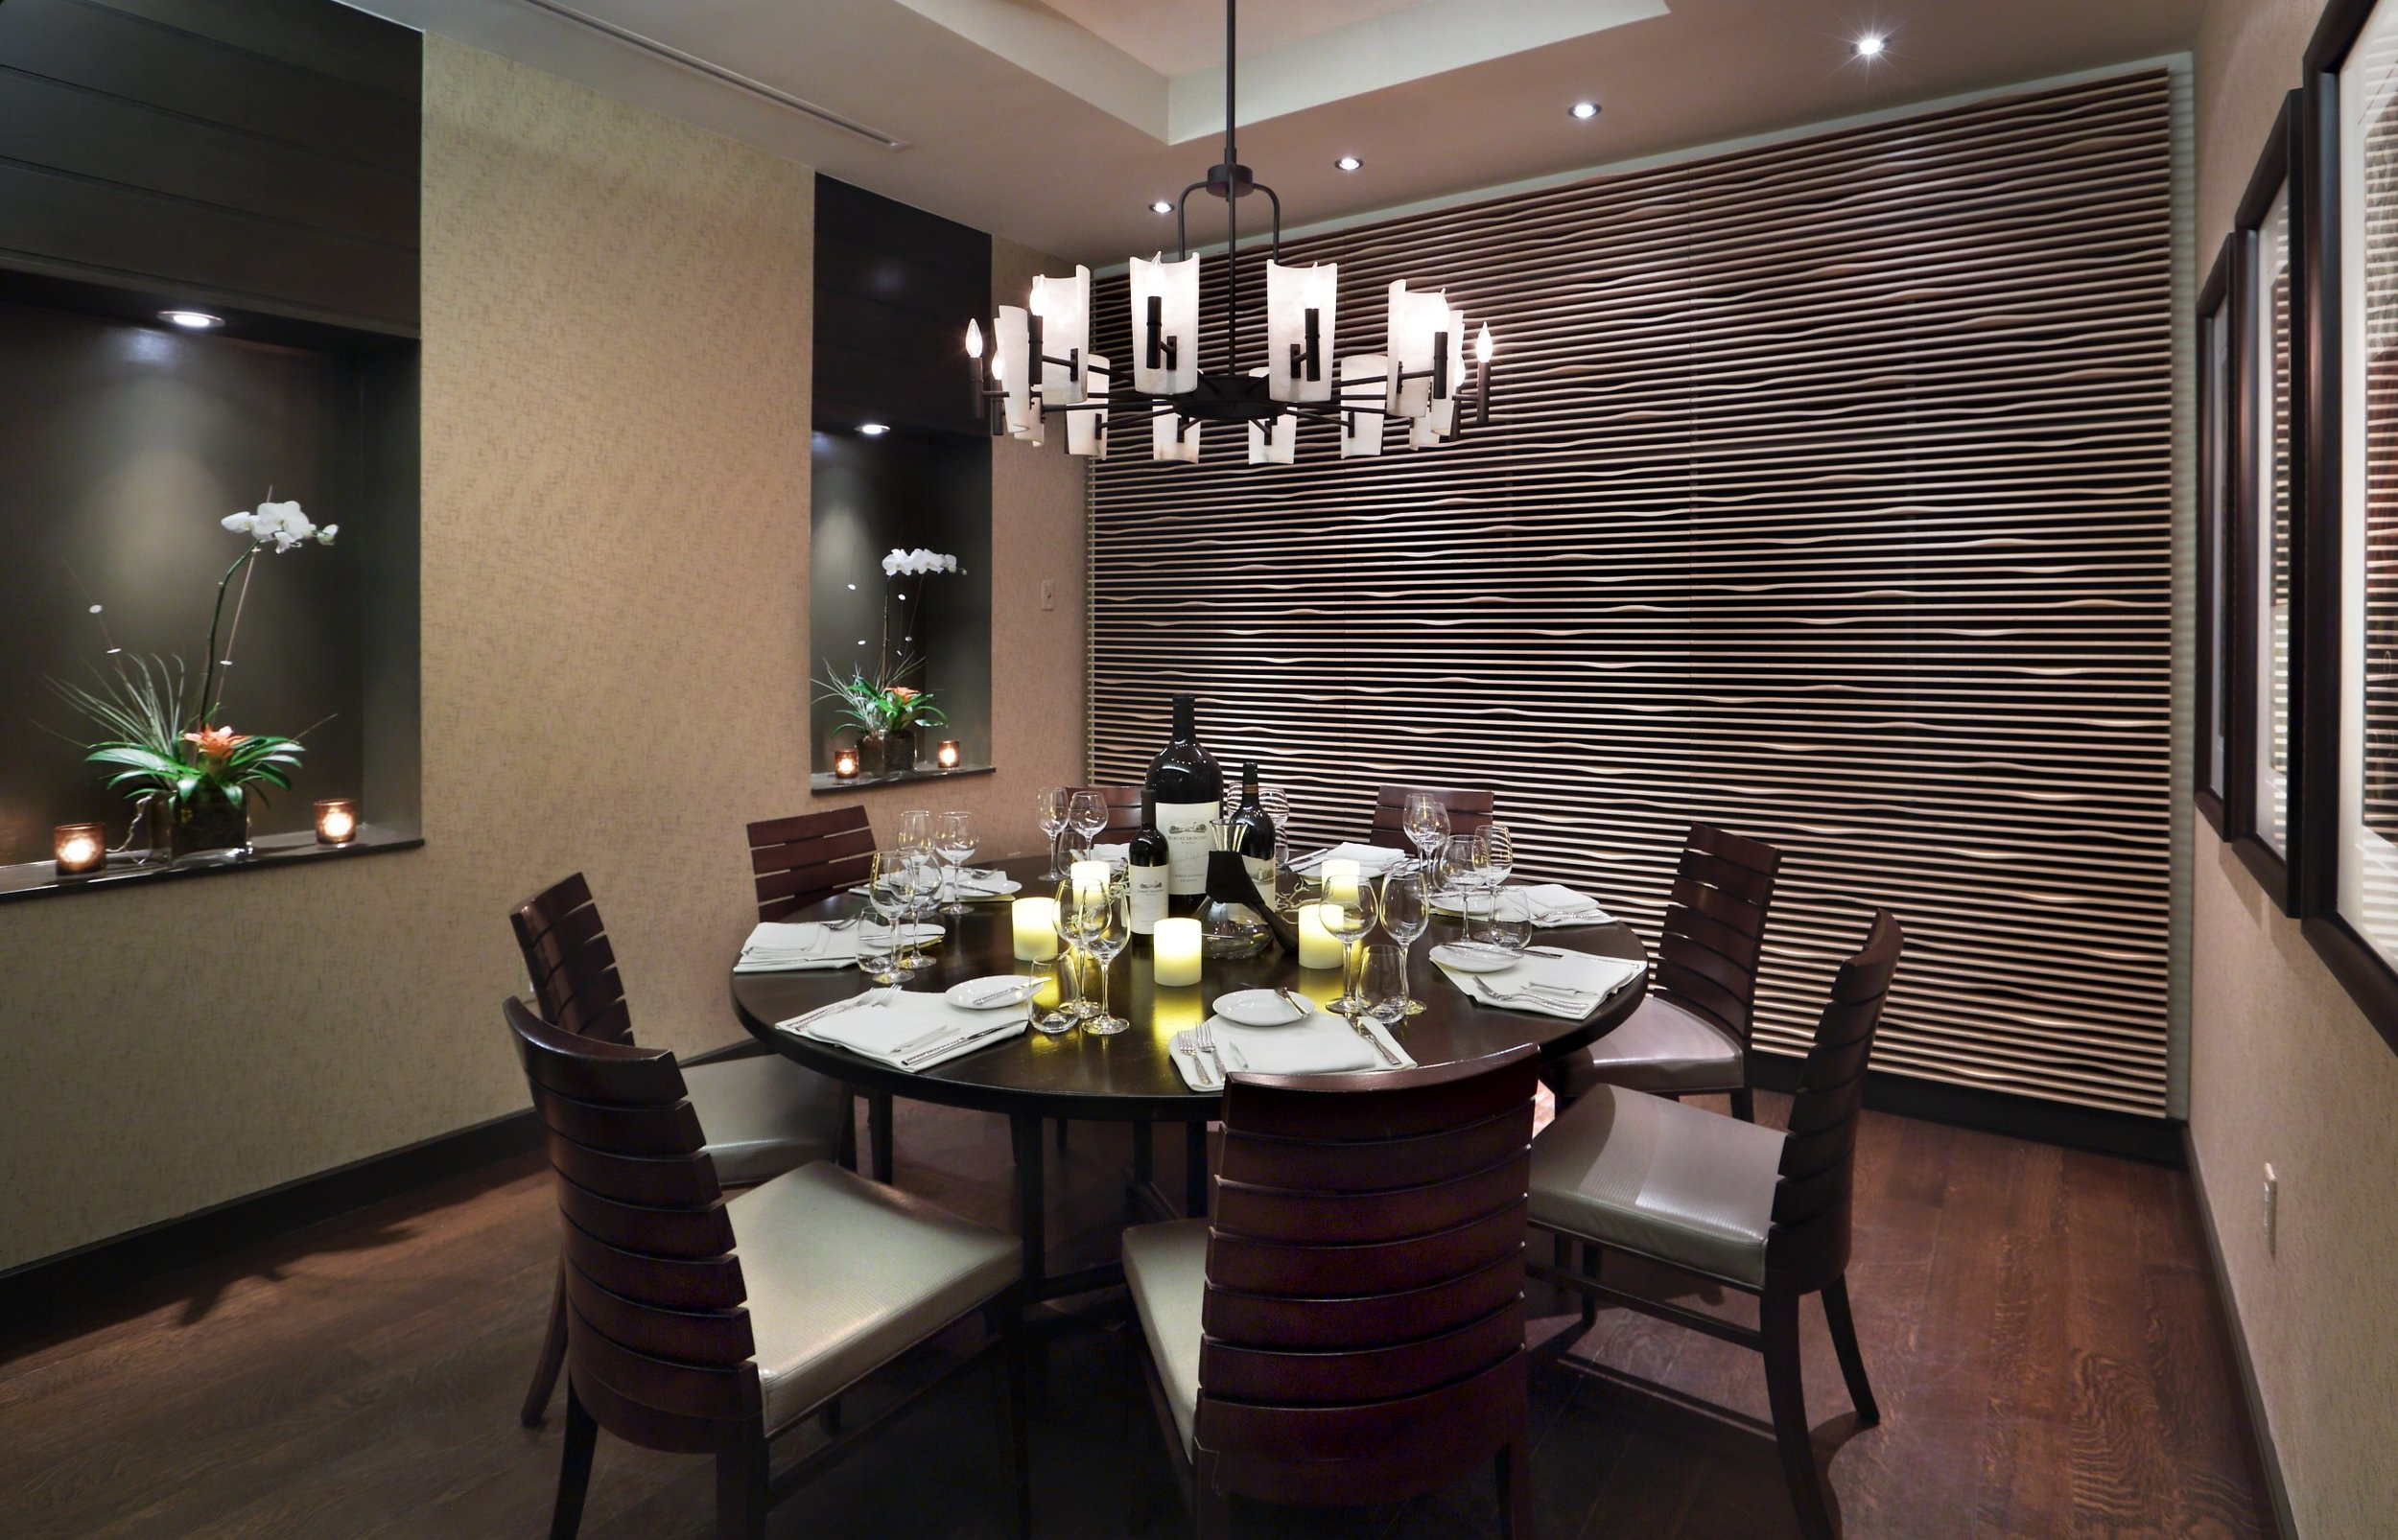 Small-Private-Dining-Room_DomMiguelPhoto3173B2.jpg